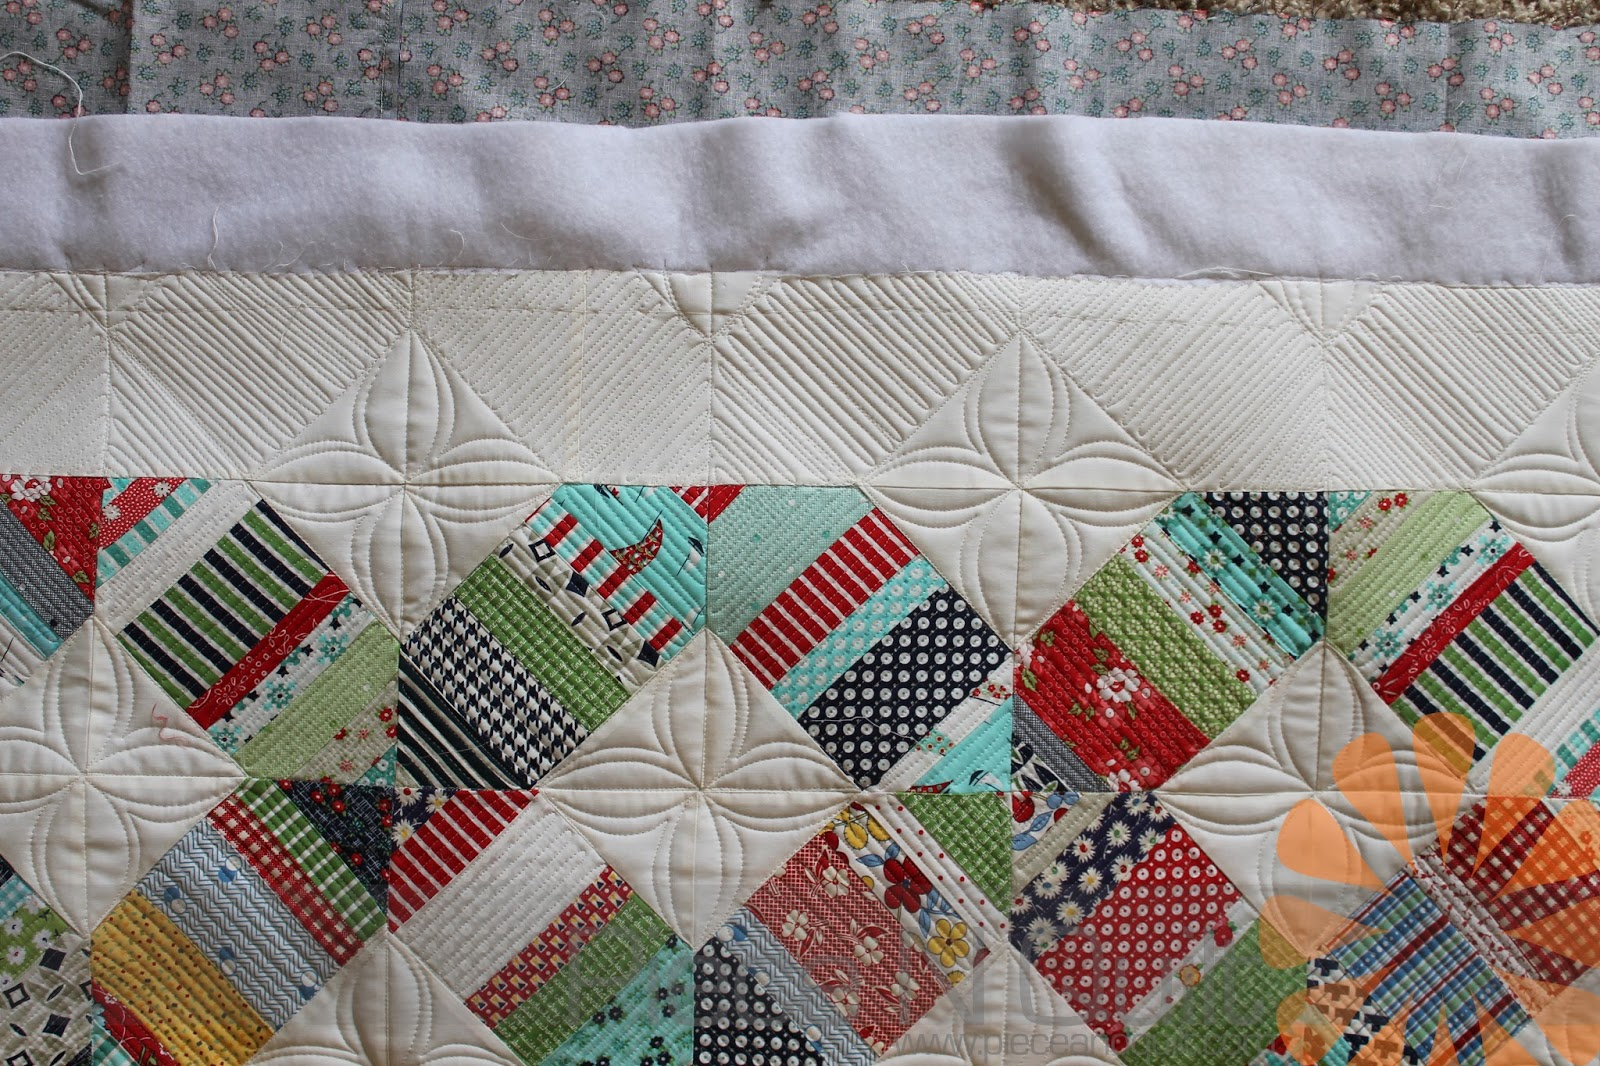 Piece n quilt july 2015 custom machine quilting a fun border idea maxwellsz